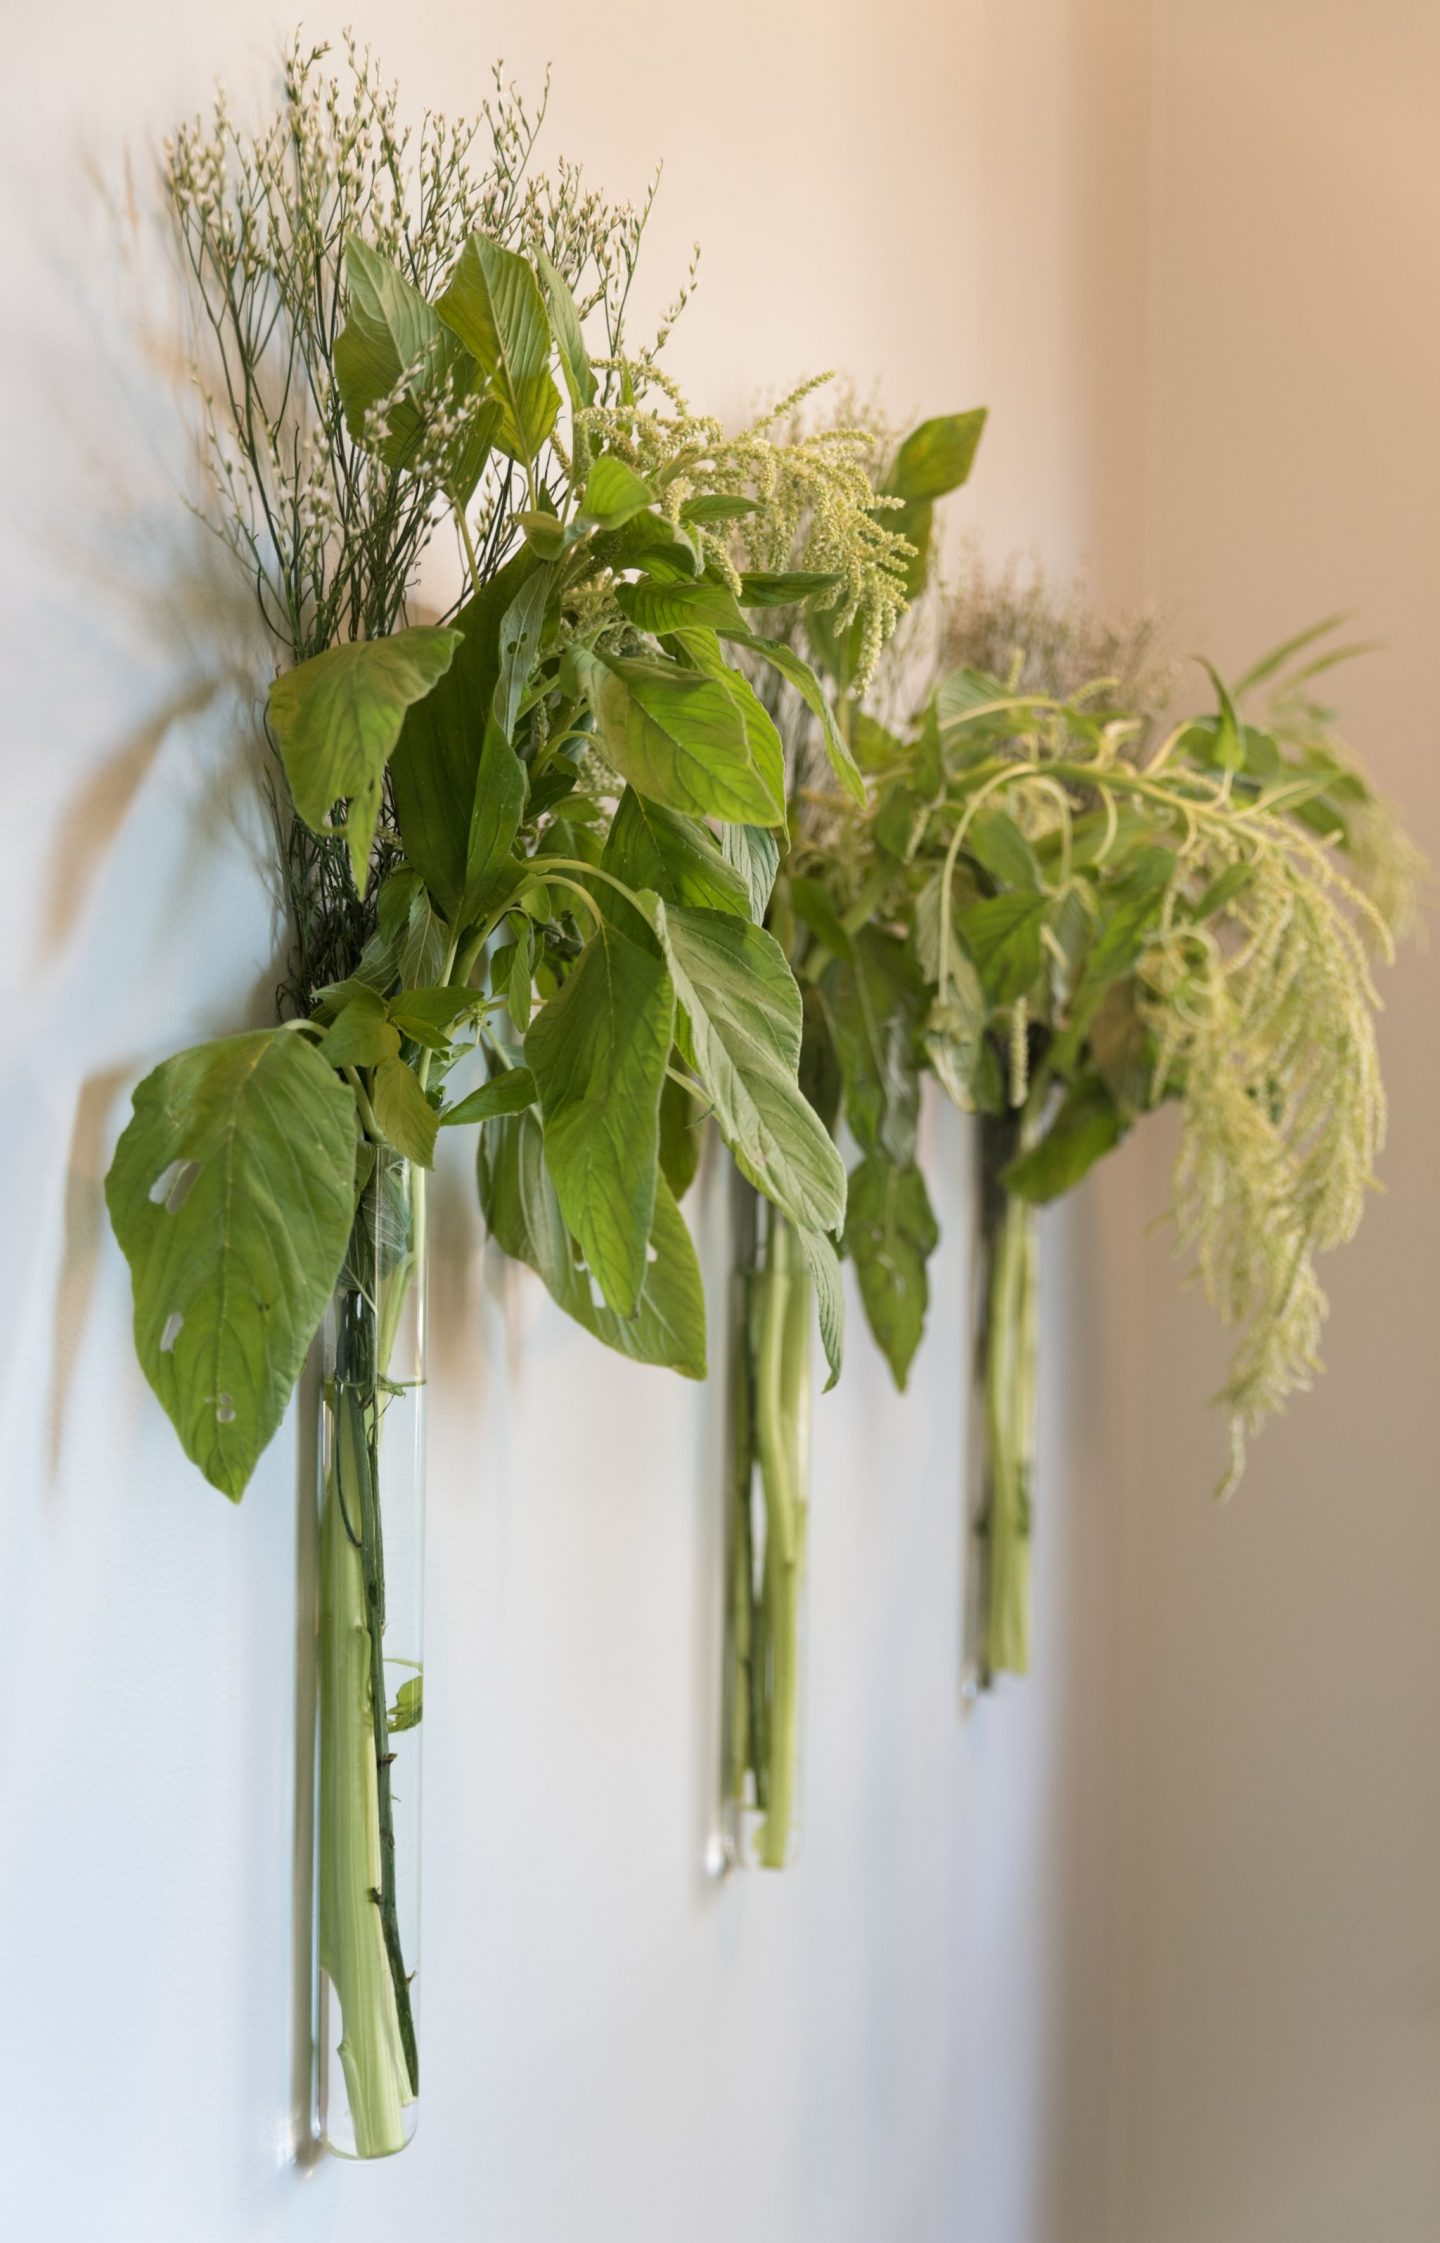 Enchanting and organic wall vases in foyer designed by Kate Ladd for O'More Show House